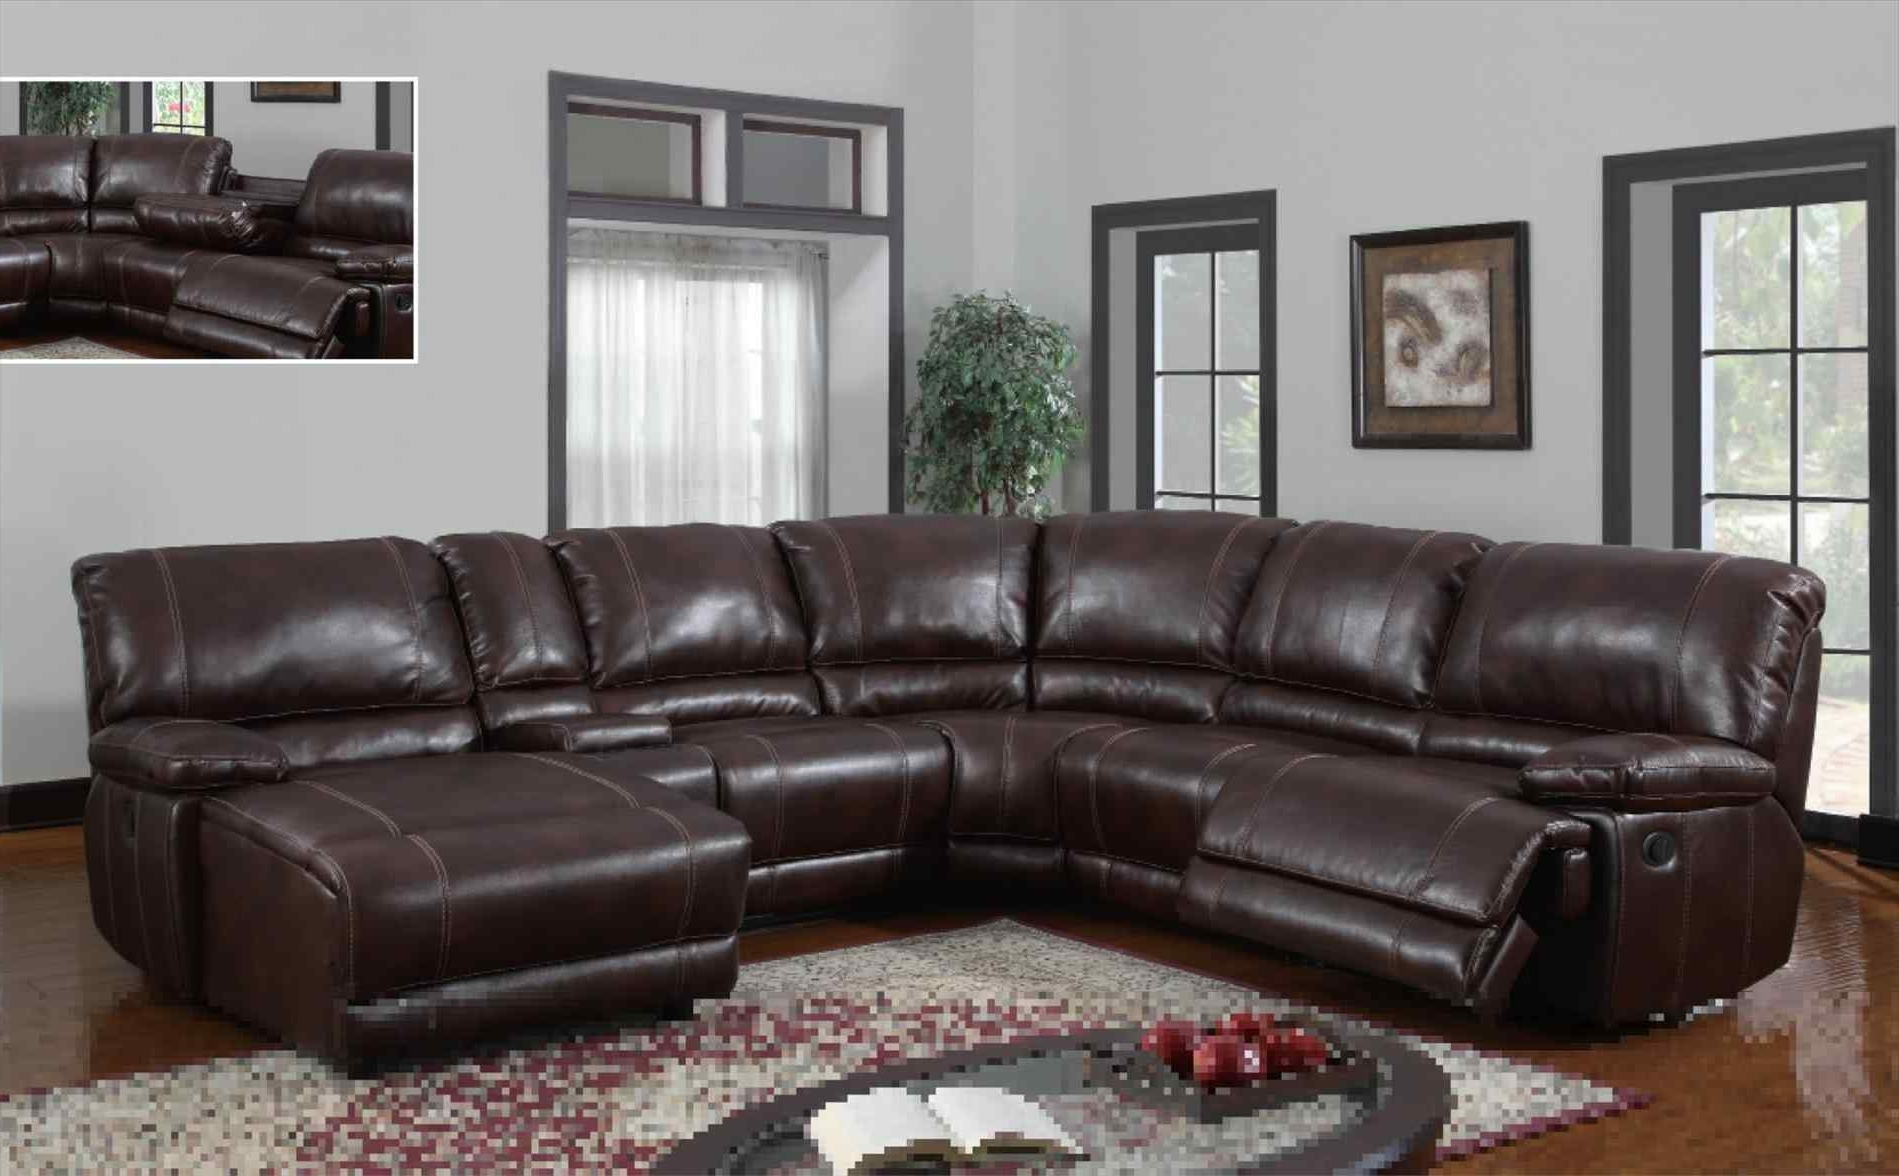 The Images Collection Of Thomasville Sectional Sofa Dining Sets For Most Popular Thomasville Sectional Sofas (View 9 of 20)